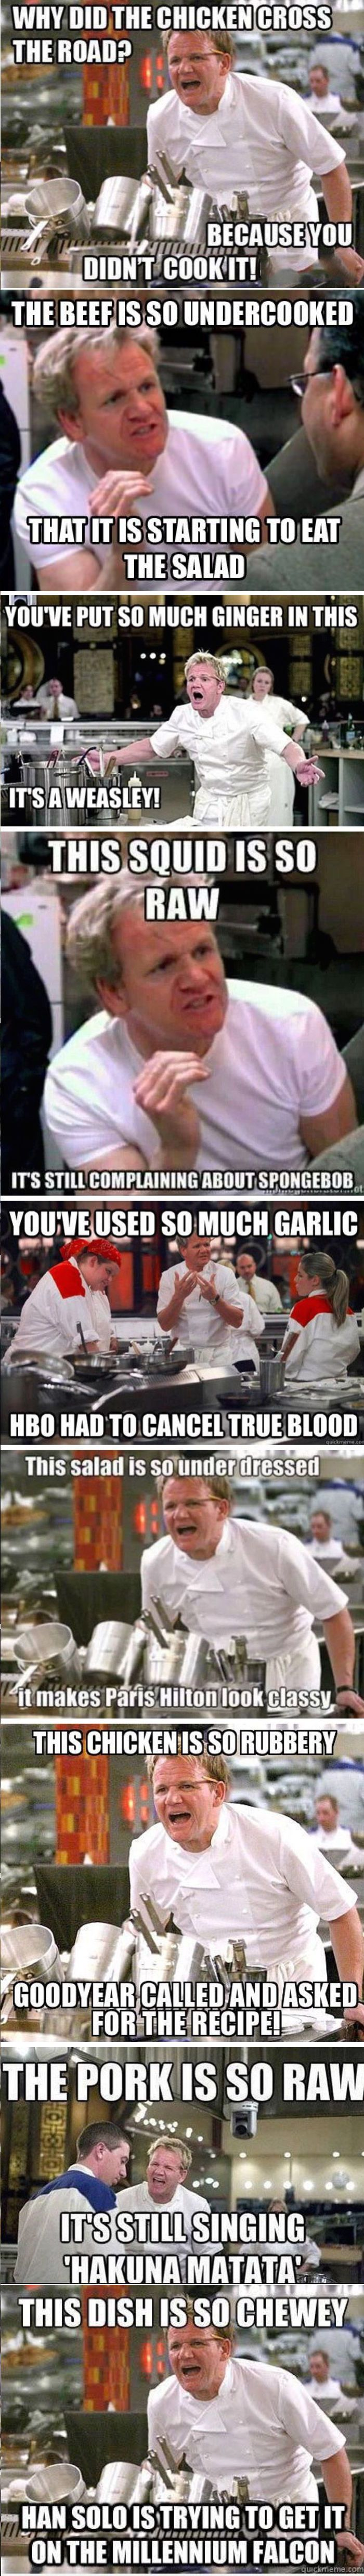 """Gordon Ramsey's Angriest Moments My fave is """"it as so much ginger it's a Weasley!"""" Lol"""